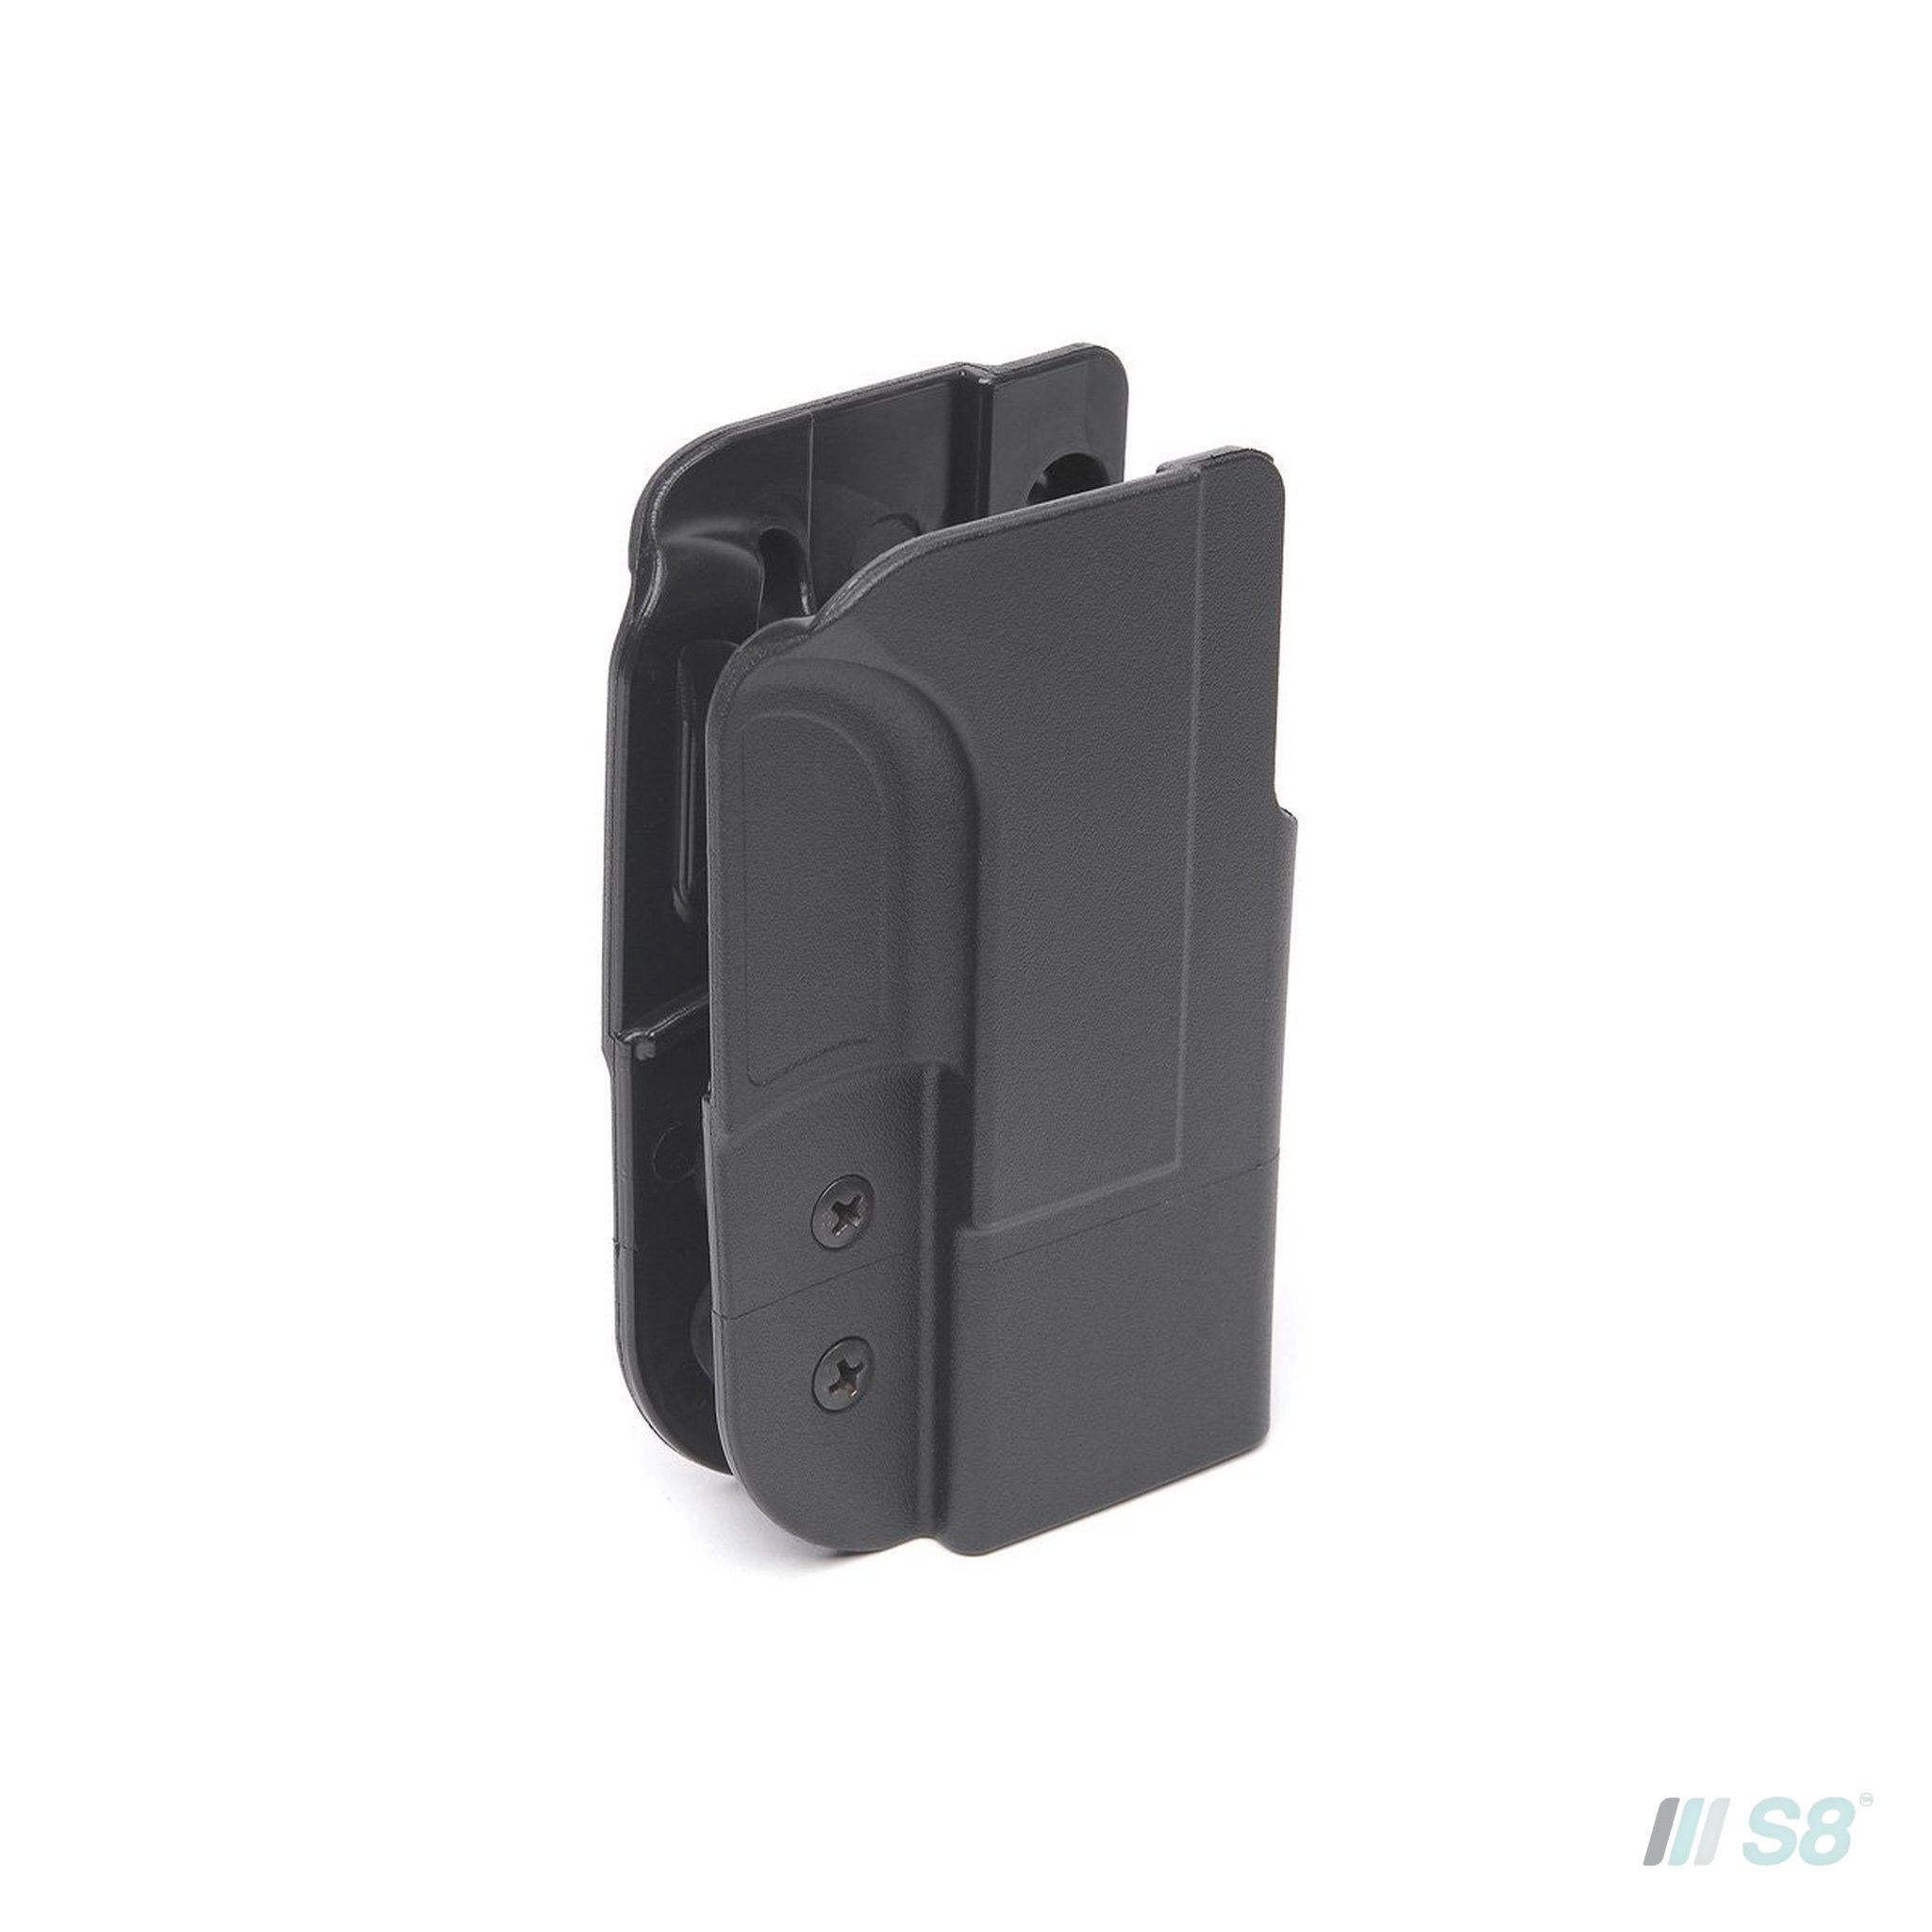 Unity Tactical CLUTCH Blade-Tech Revolution Pistol Holster Insert-Unity Tactical-S8 Products Group